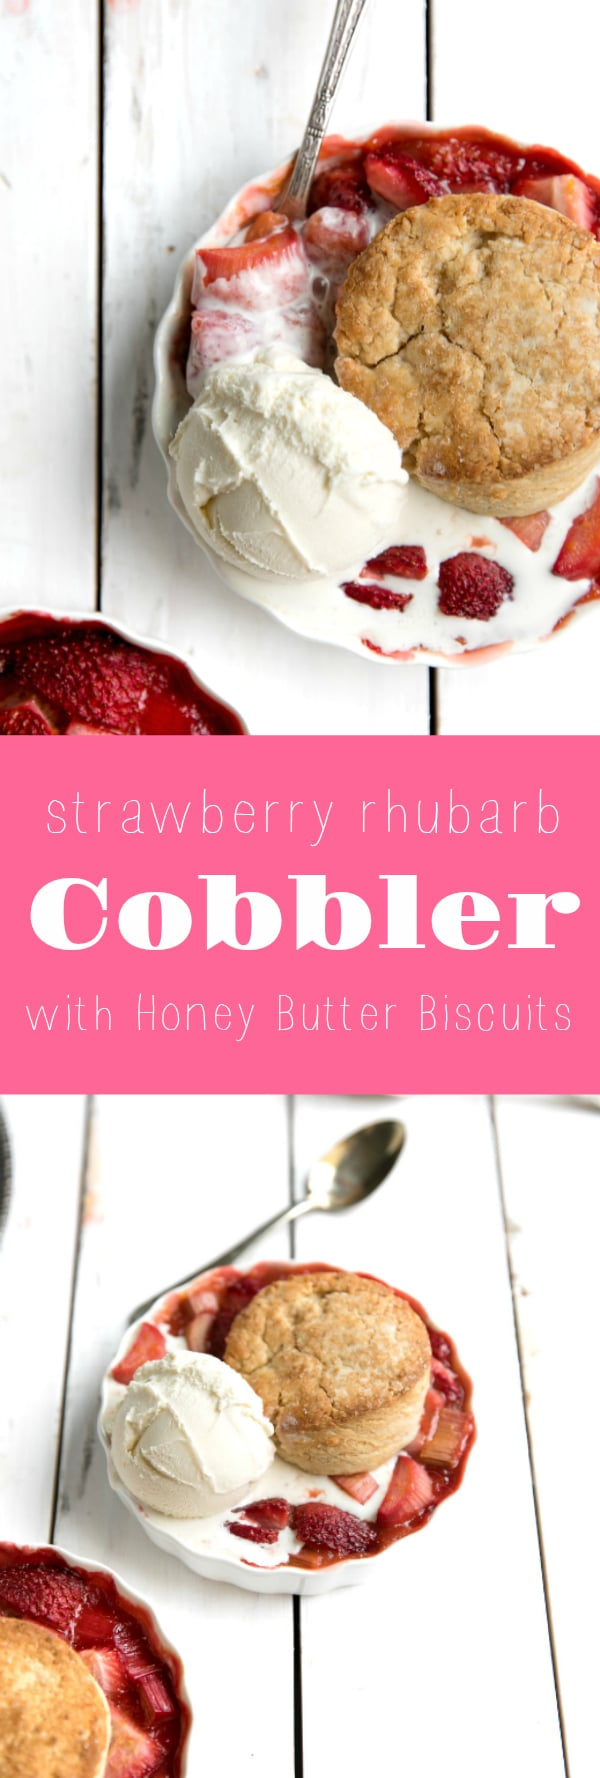 Strawberry Rhubarb Cobbler with Honey Butter Biscuits via @theforkedspoon #dessert #cobbler #rhubarb #pie #strawberry #theforkedspoon